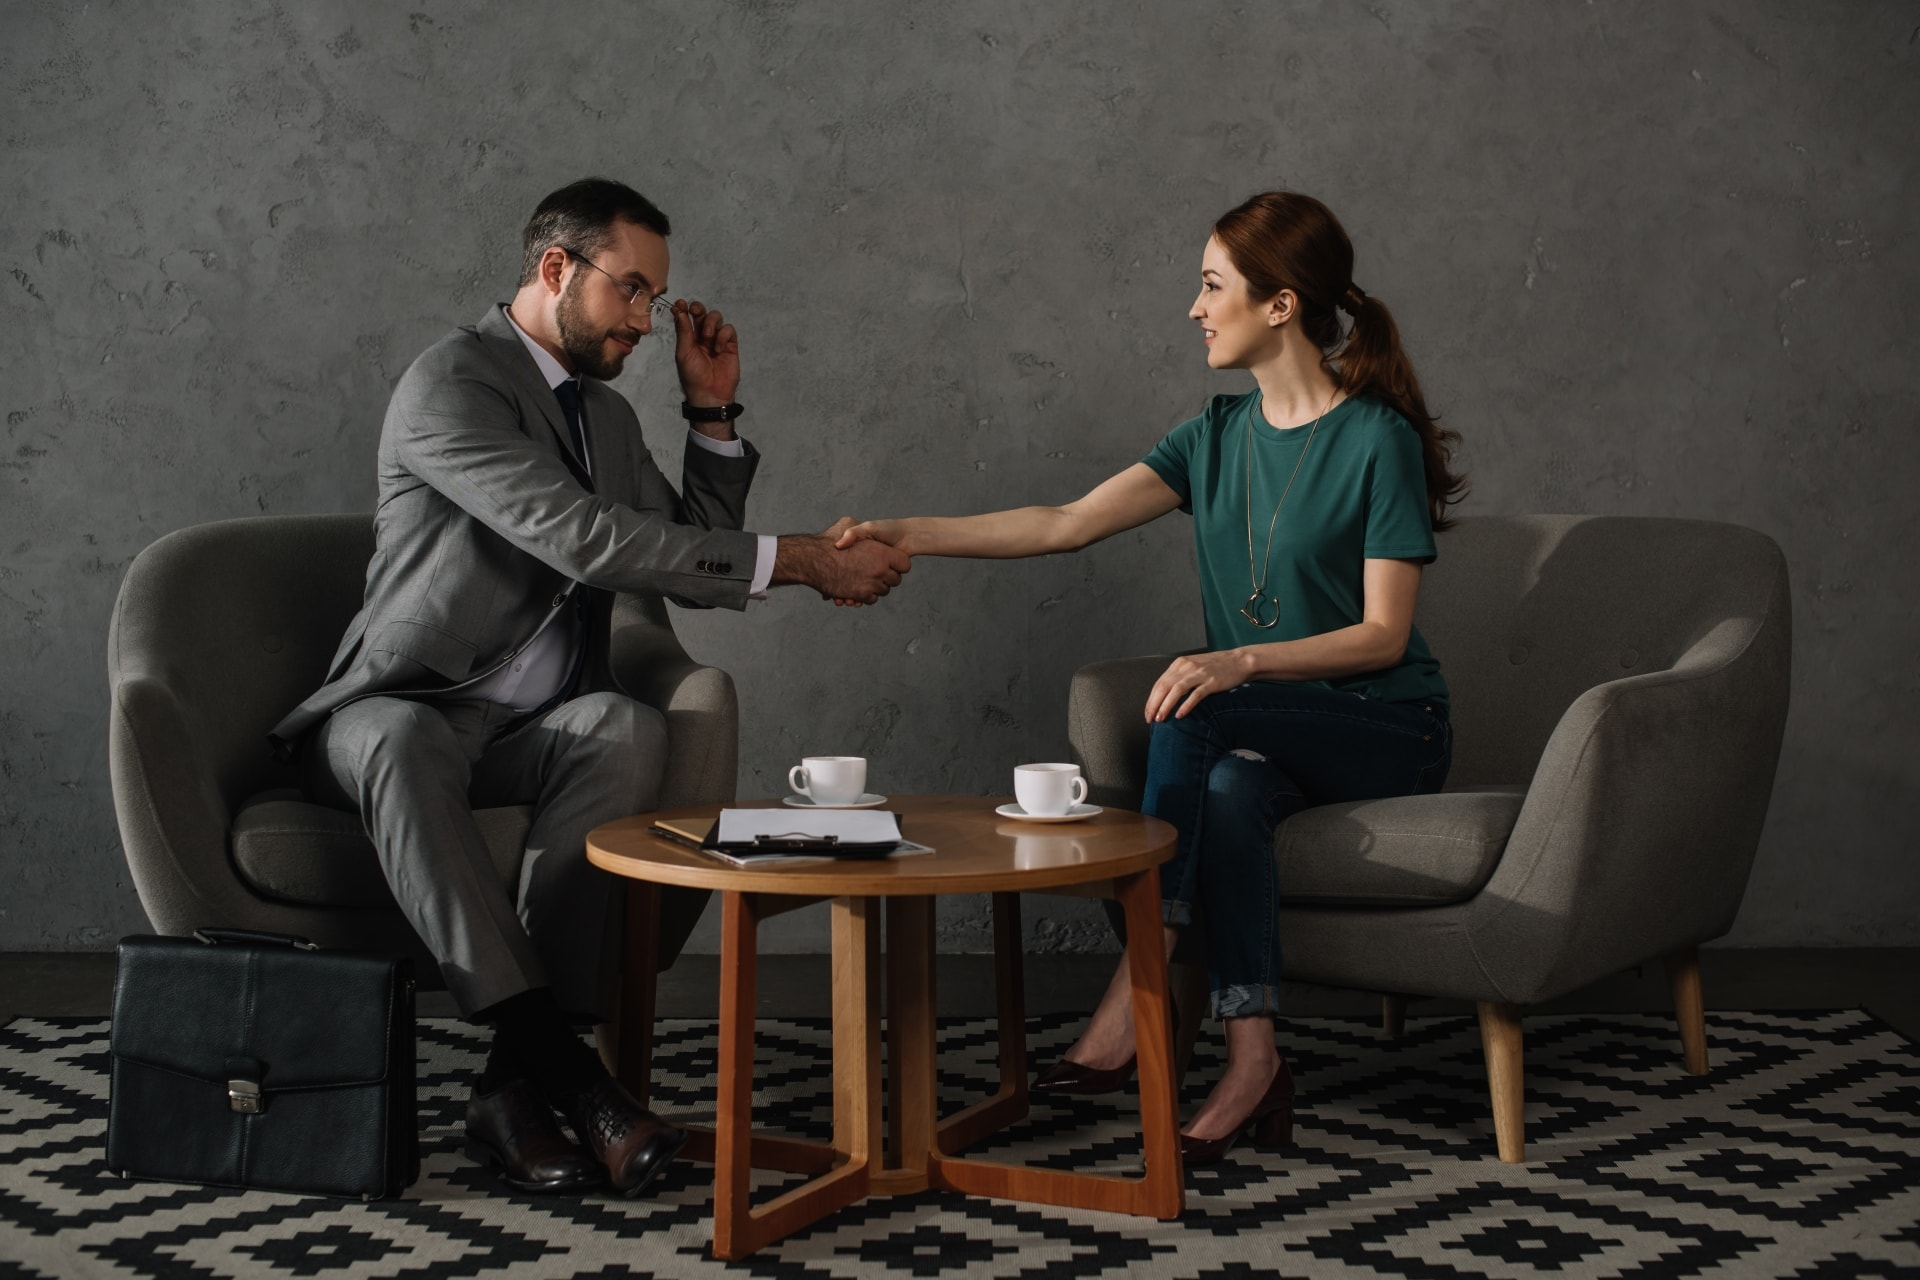 Attorney and client meet at small coffee table